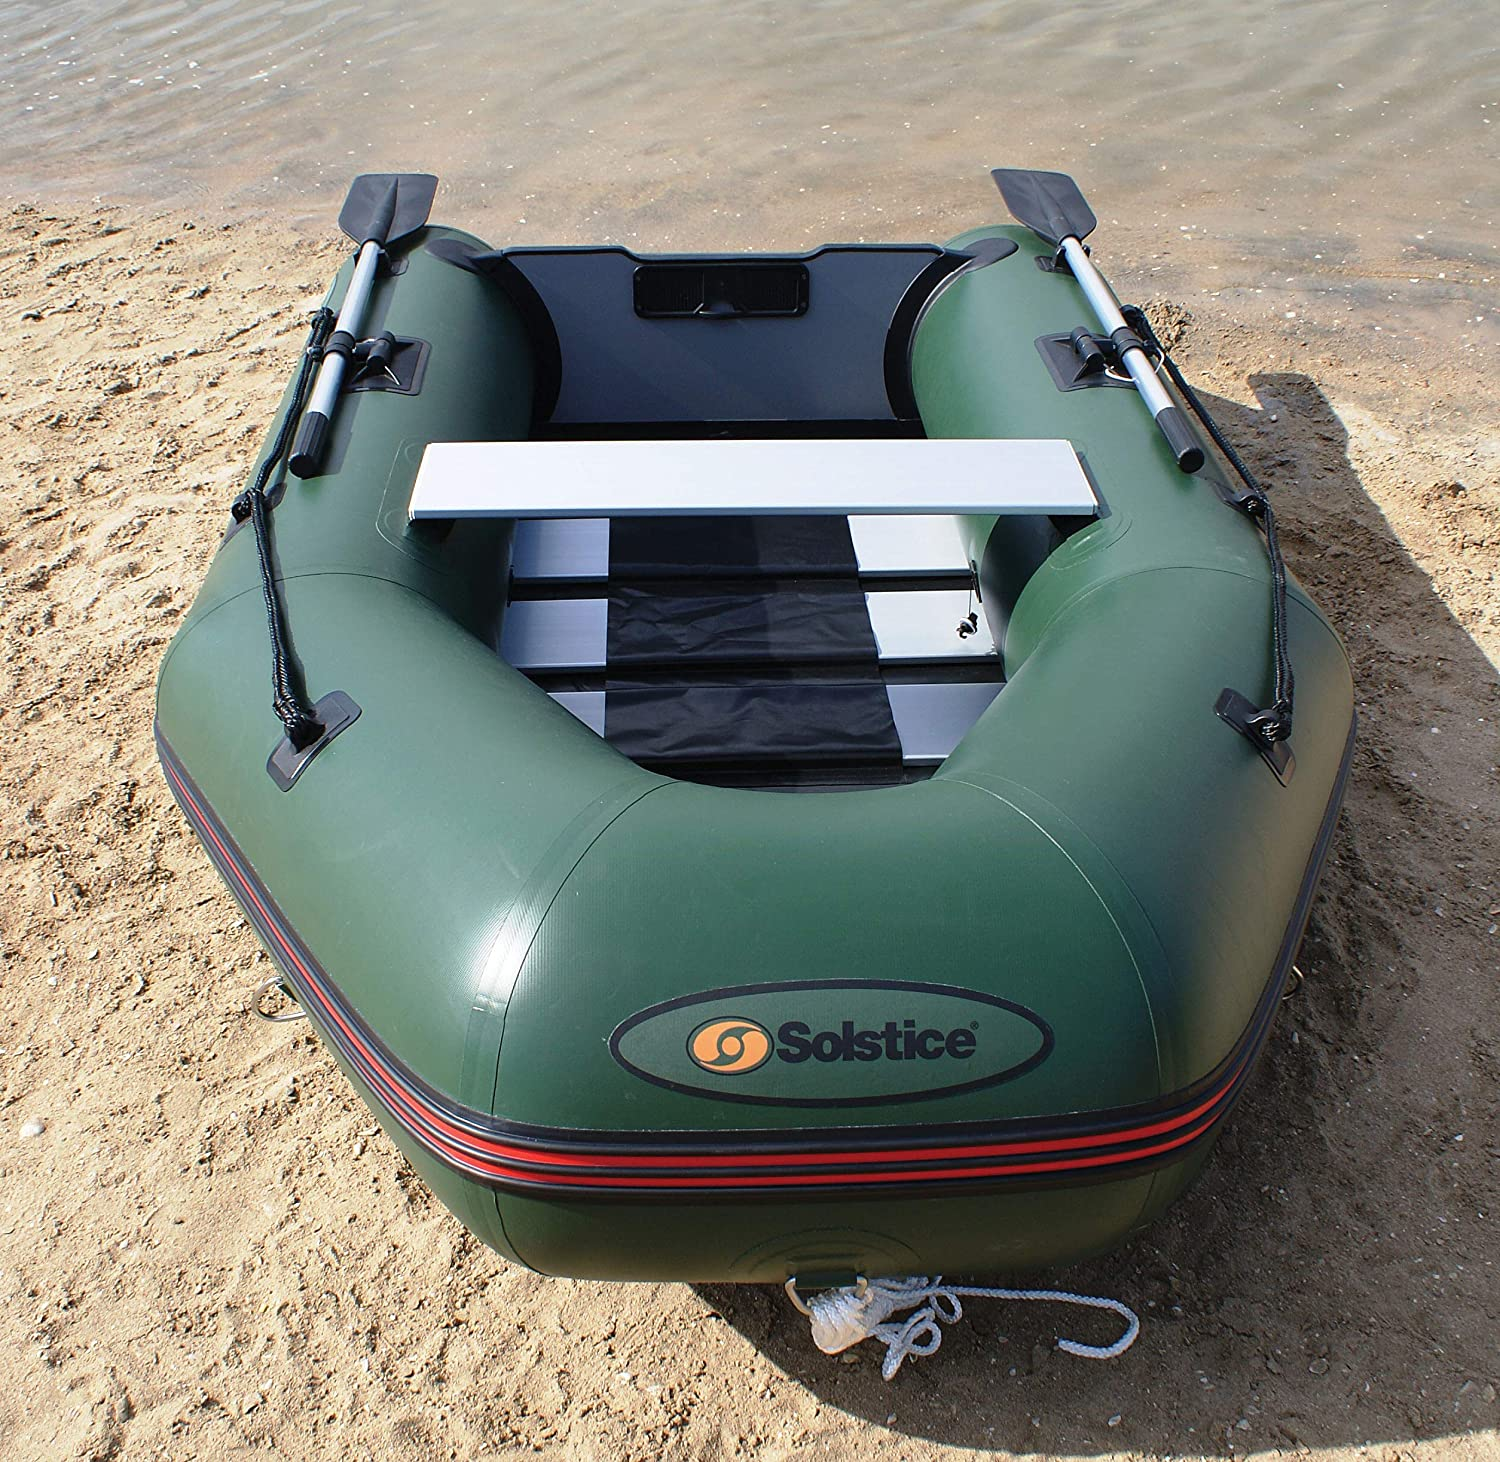 Solstice by Super Special SALE held Limited Special Price Swimline Sportster Boat 3 Person